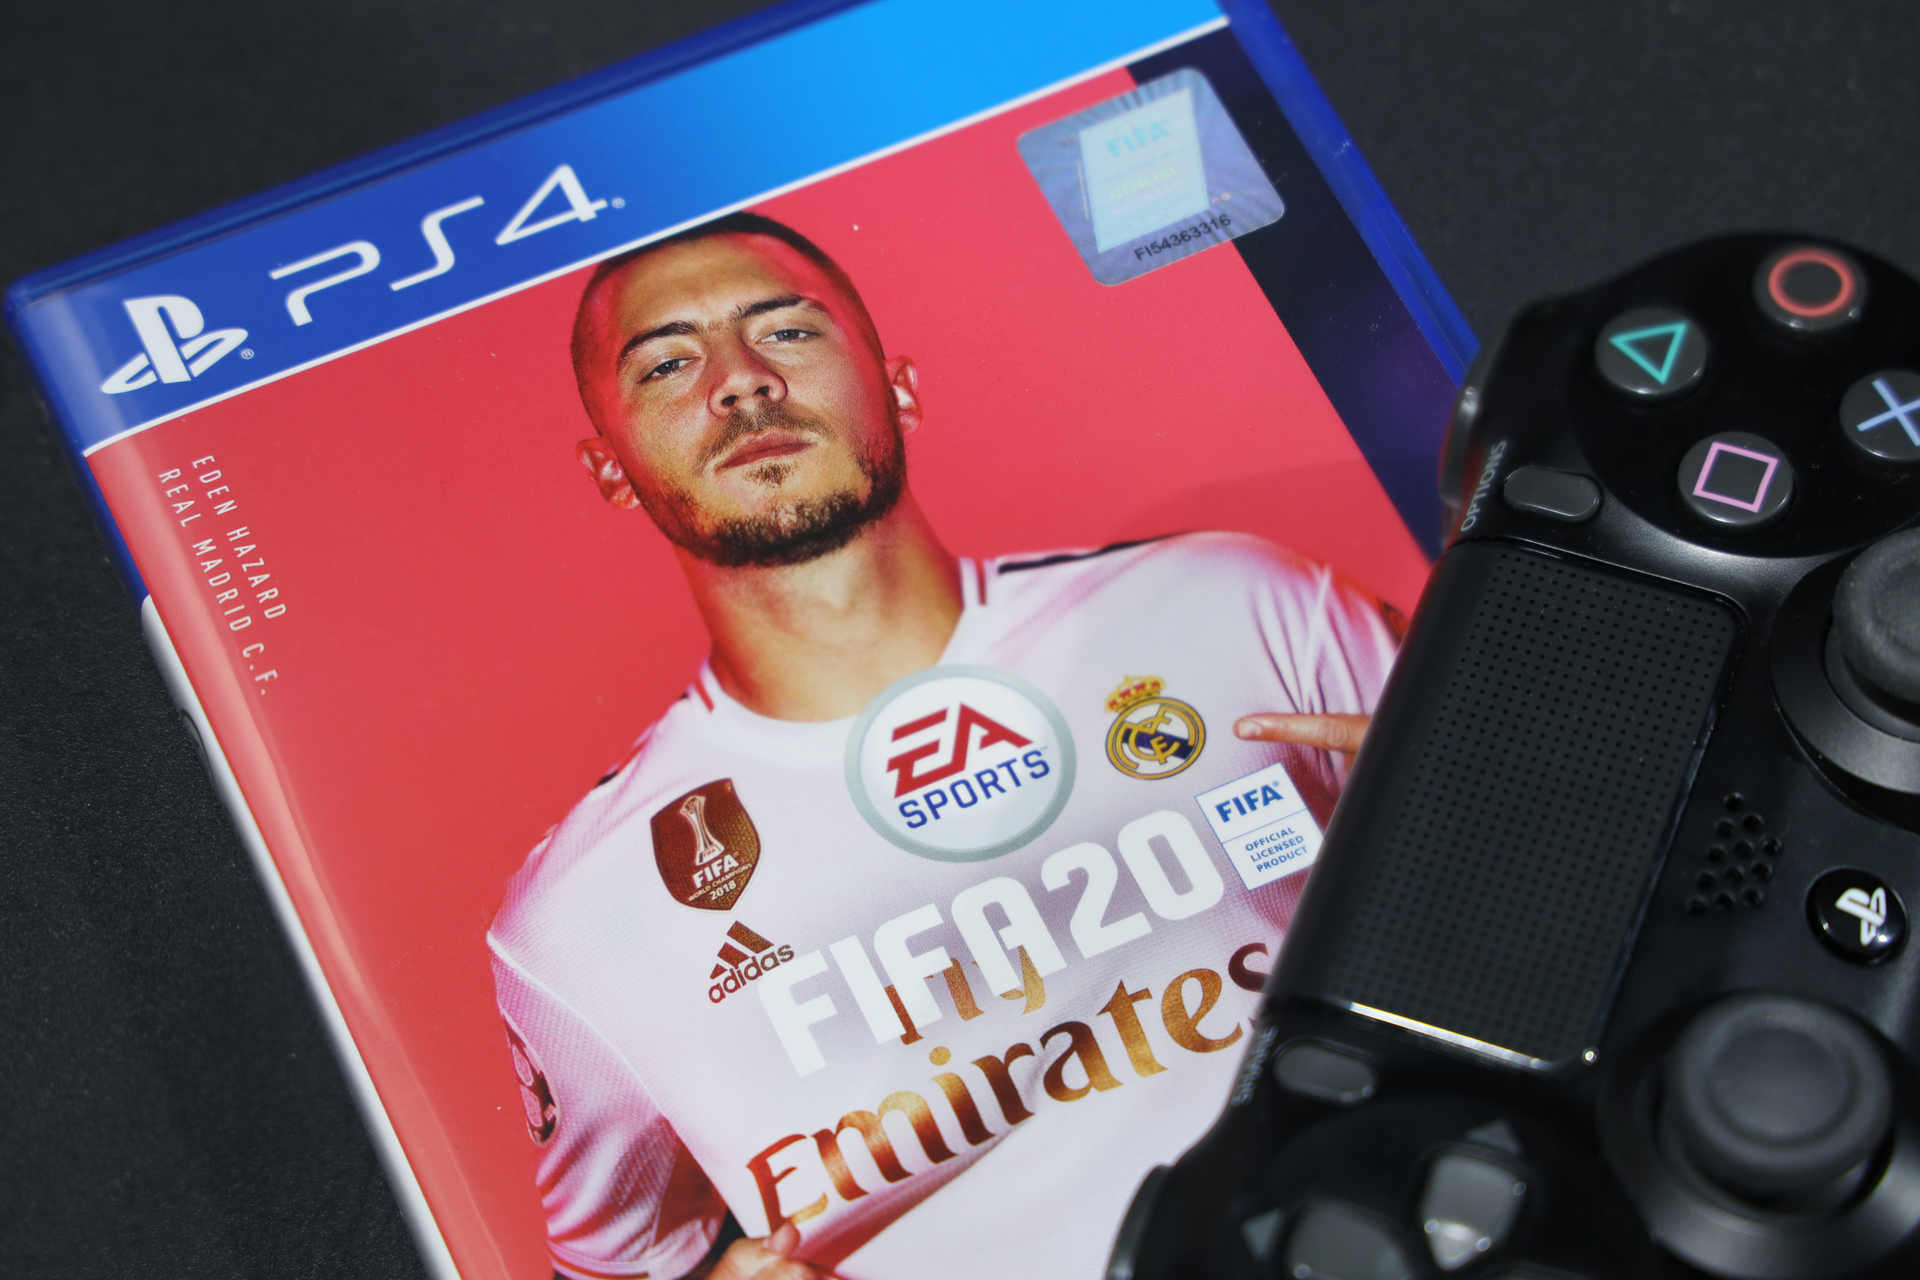 FIFA 20 data leak compromises 1,600 players' data – has EA breached GDPR?